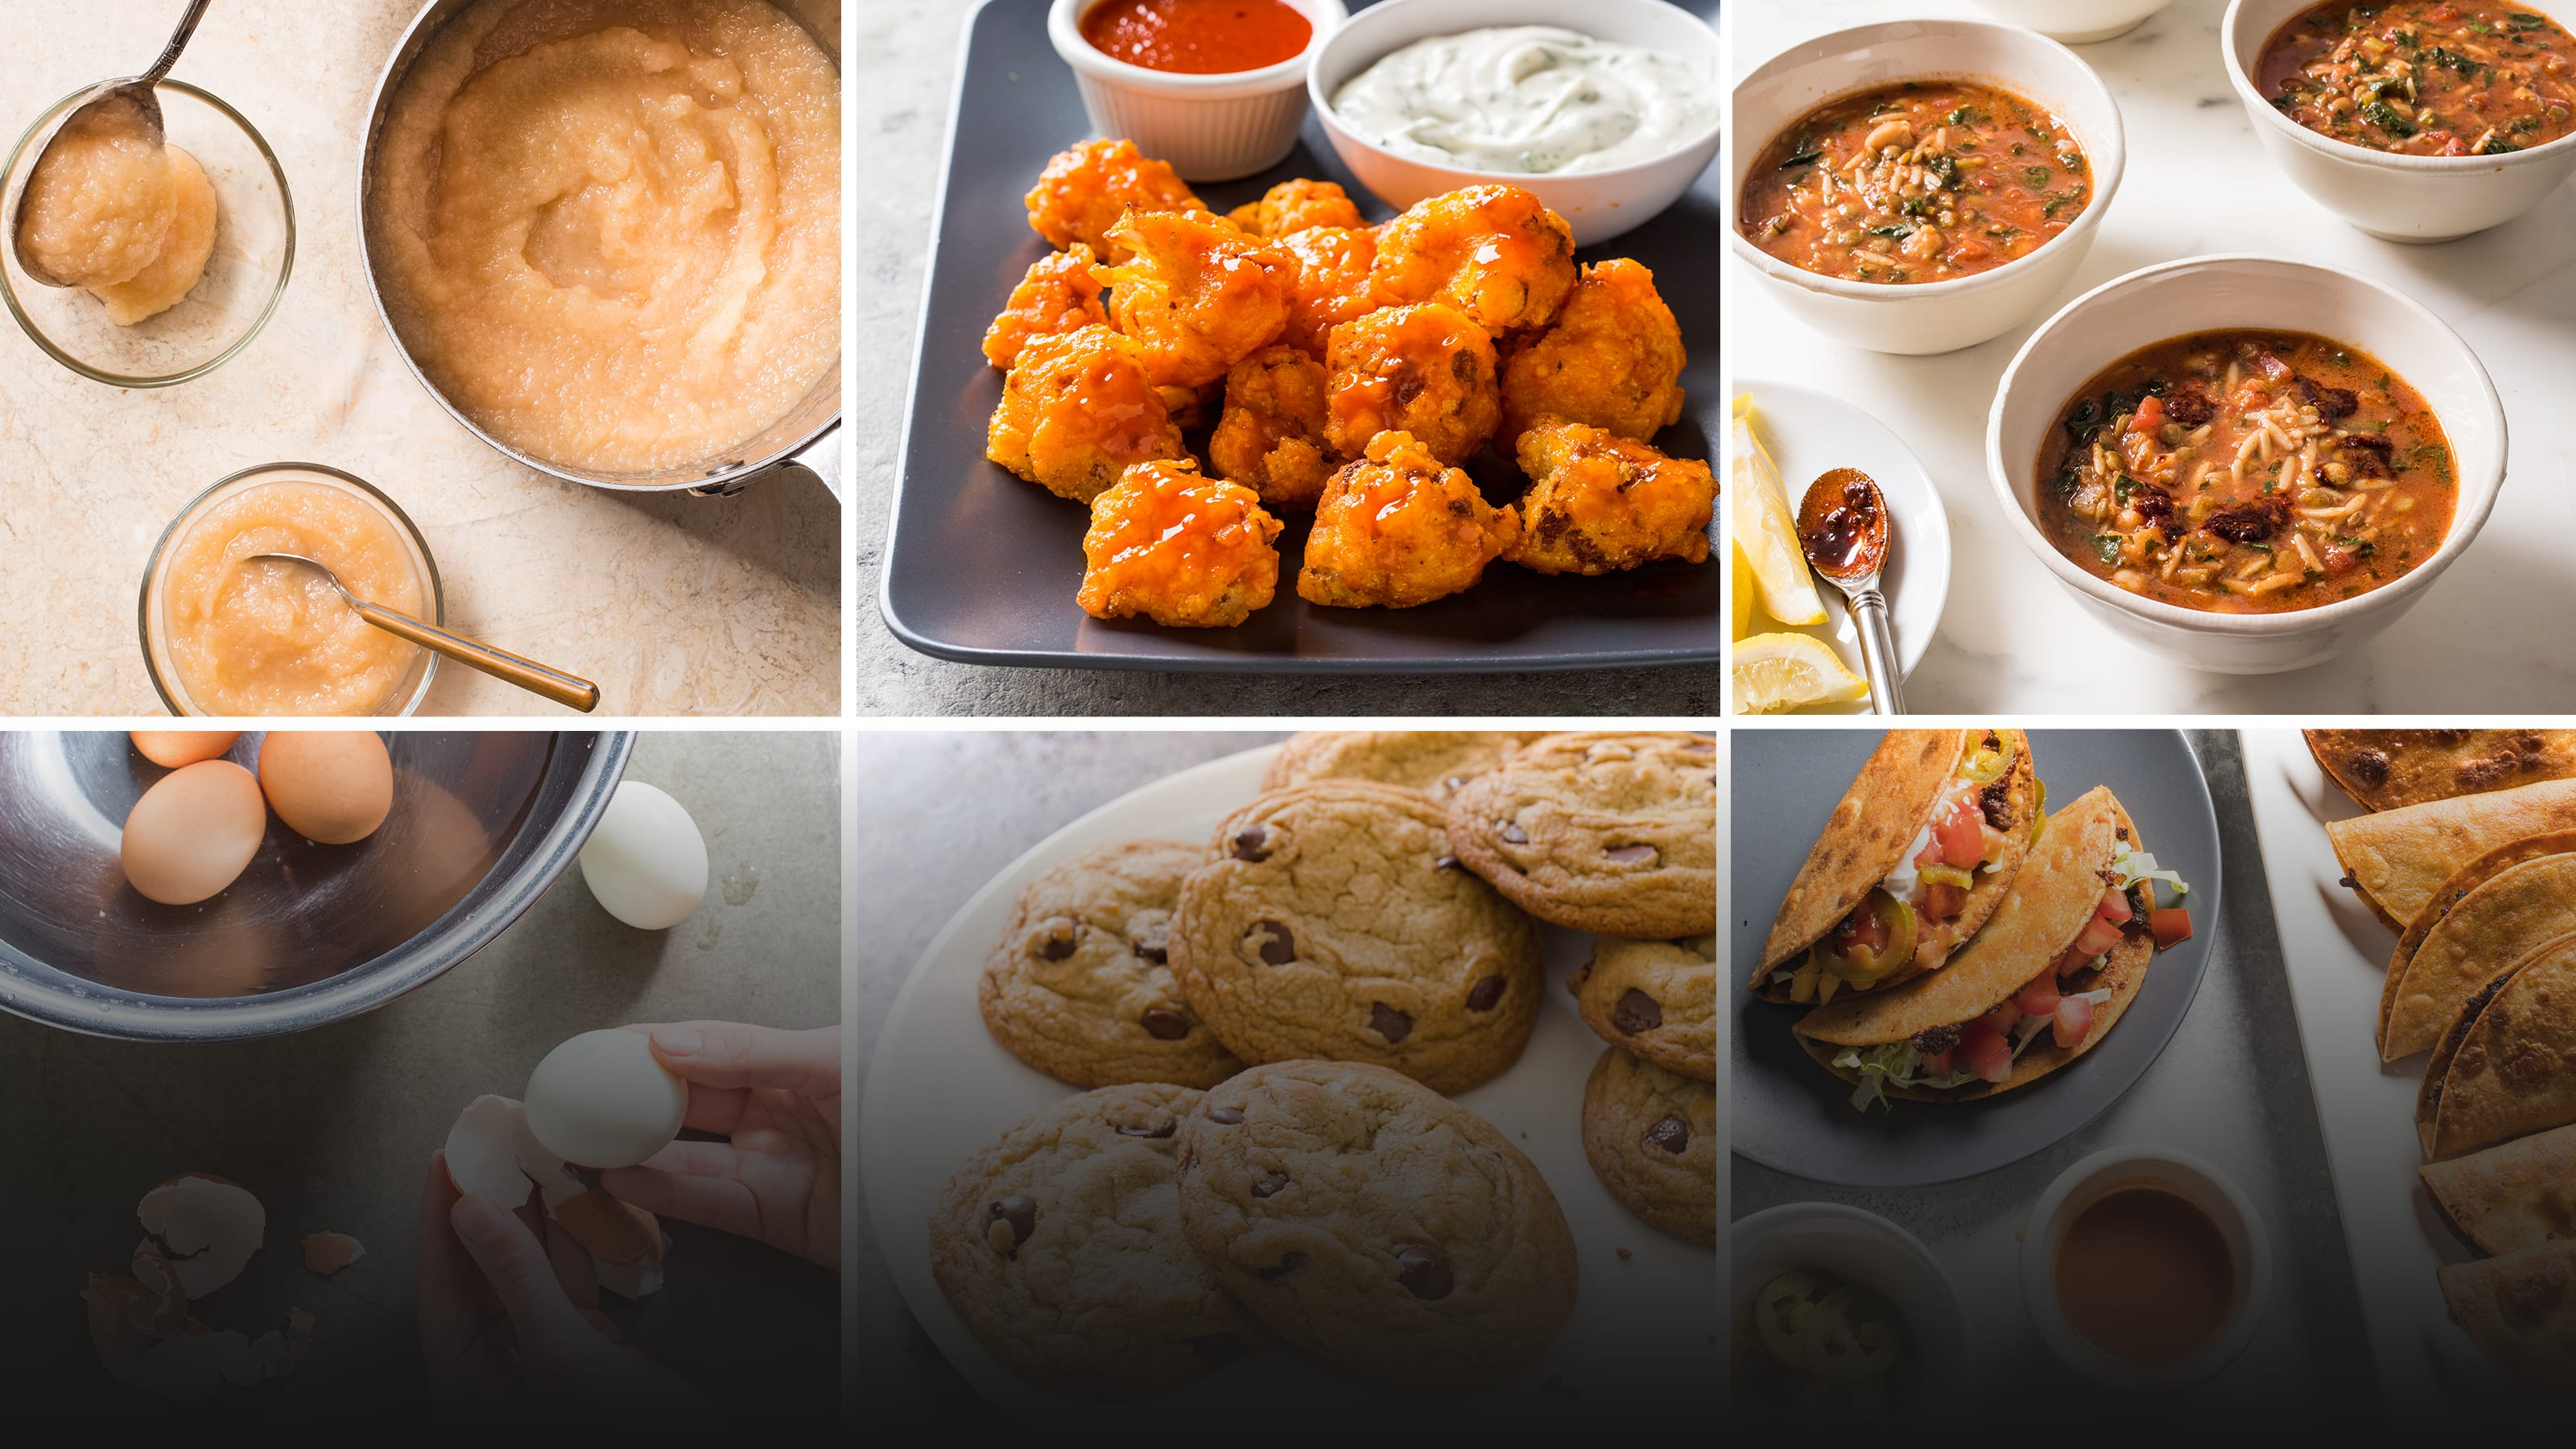 The Most Popular America's Test Kitchen Recipes in September